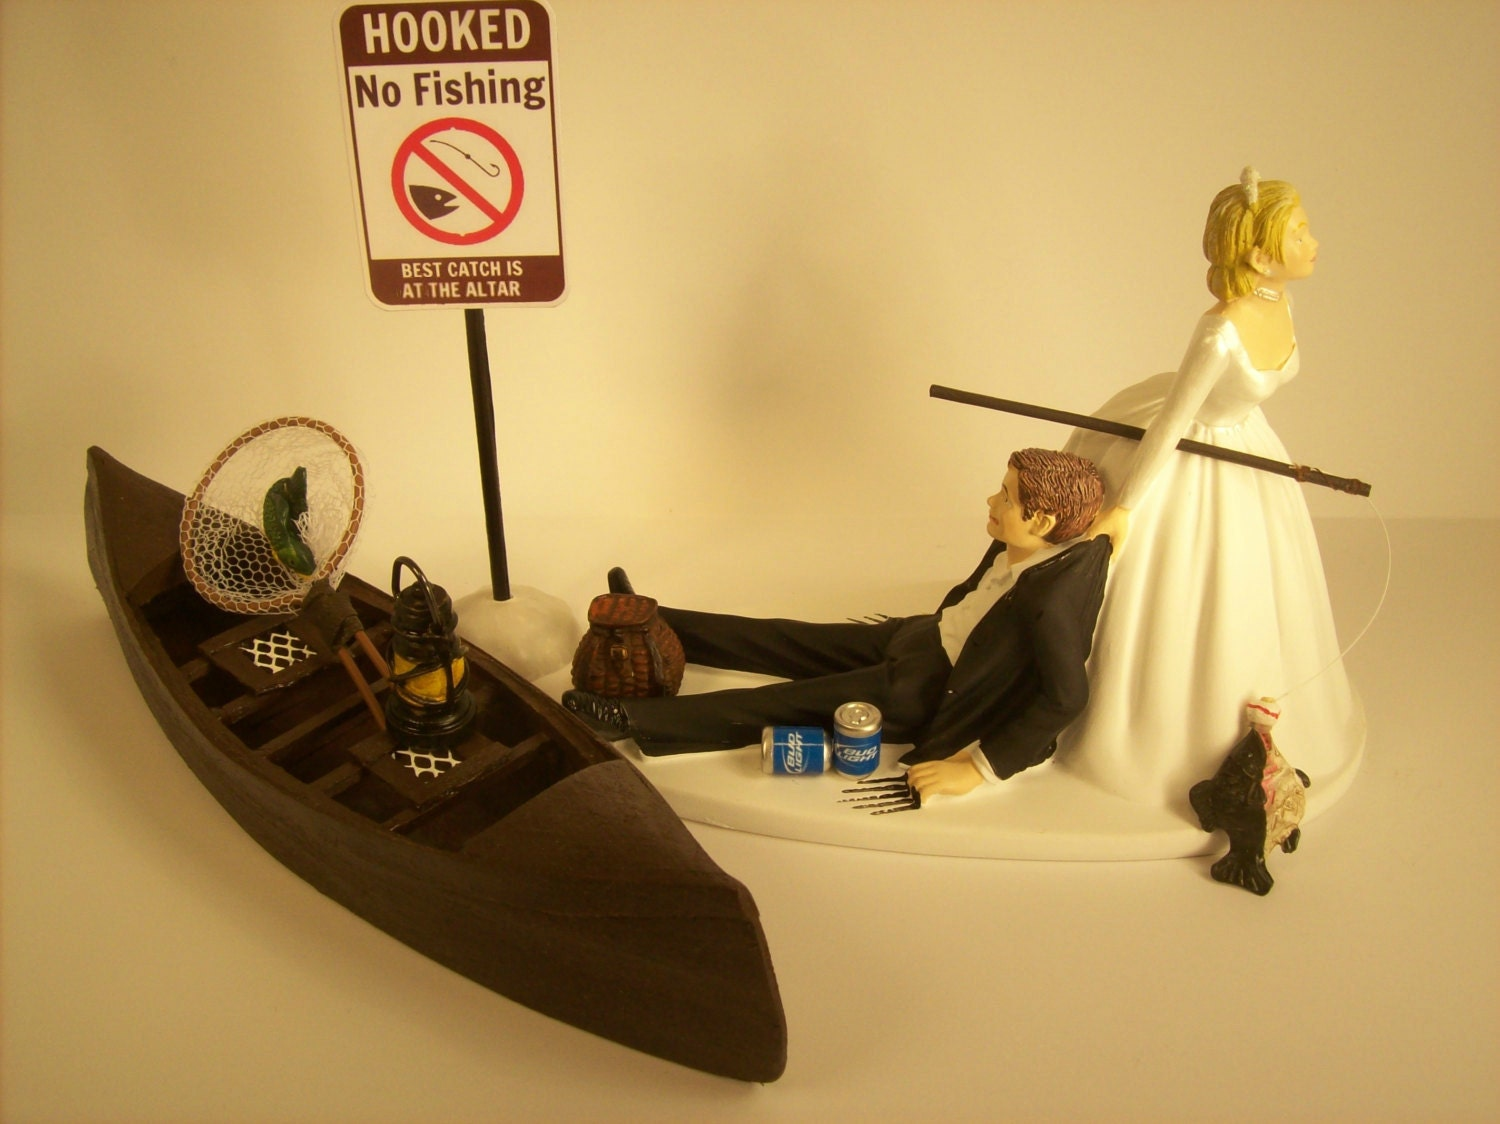 No FISHING Funny Wedding Cake Topper w/ Boat Bride and Groom | Etsy